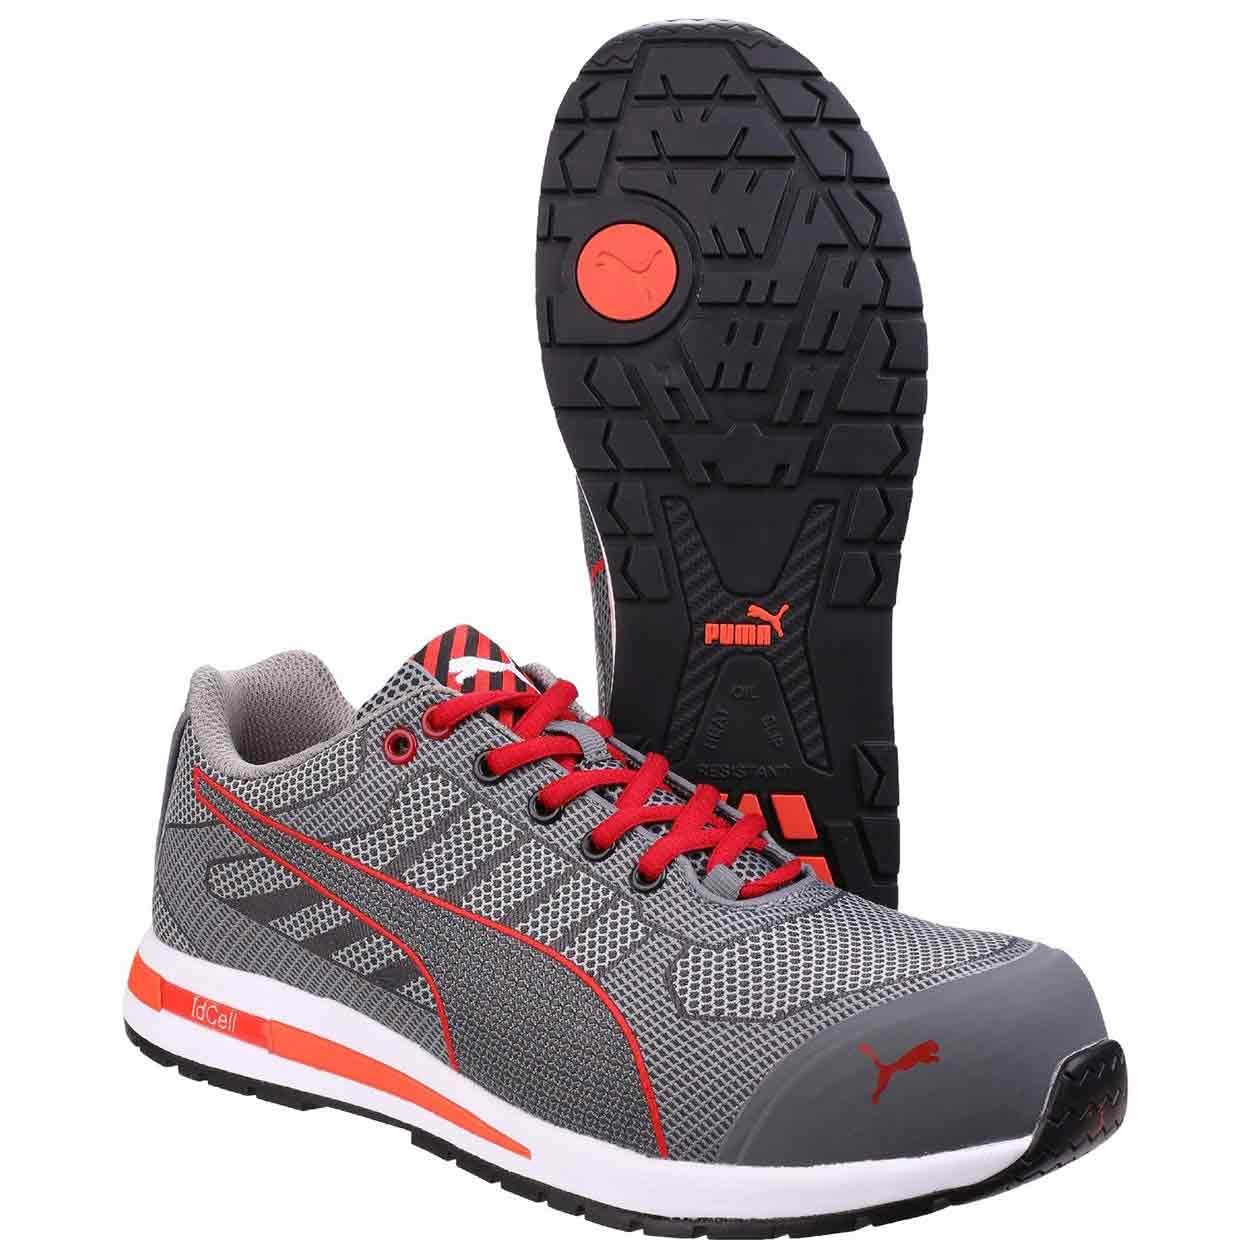 242e91be89768c Puma Safety Xelerate Knit Low - Safety Shoes and Trainers - Mens ...